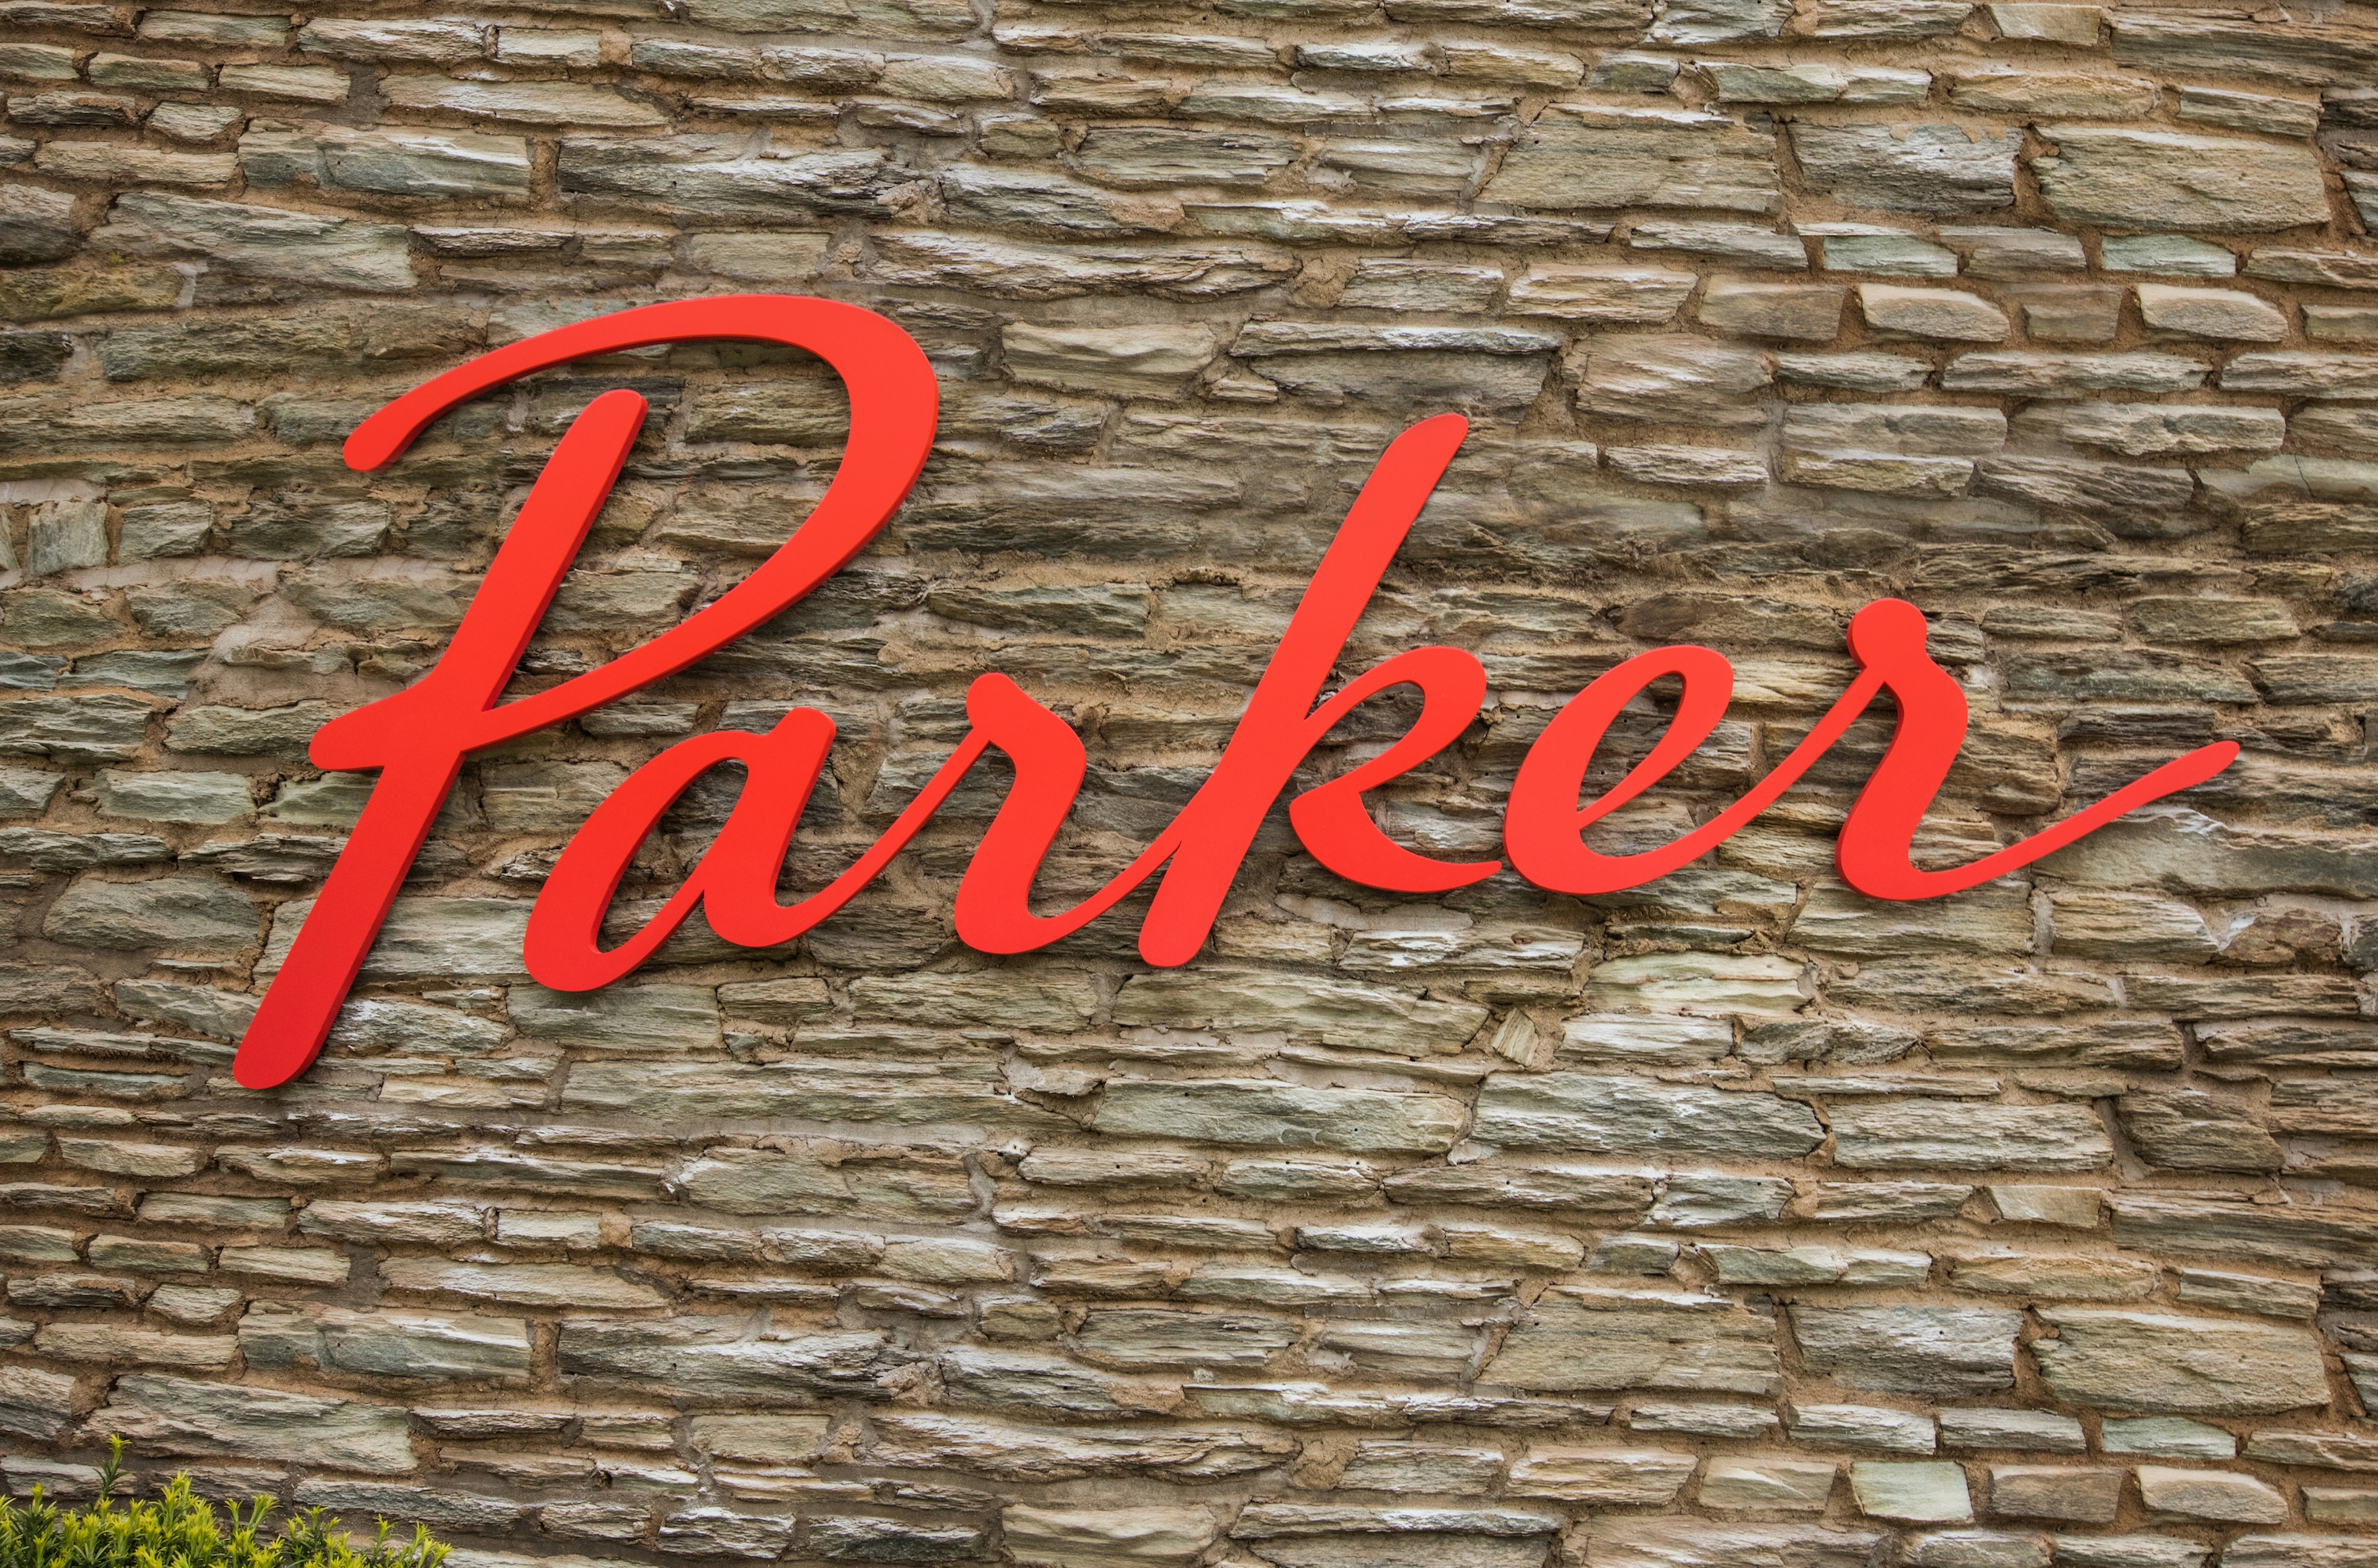 Parker's hand drawn logo on stone wall